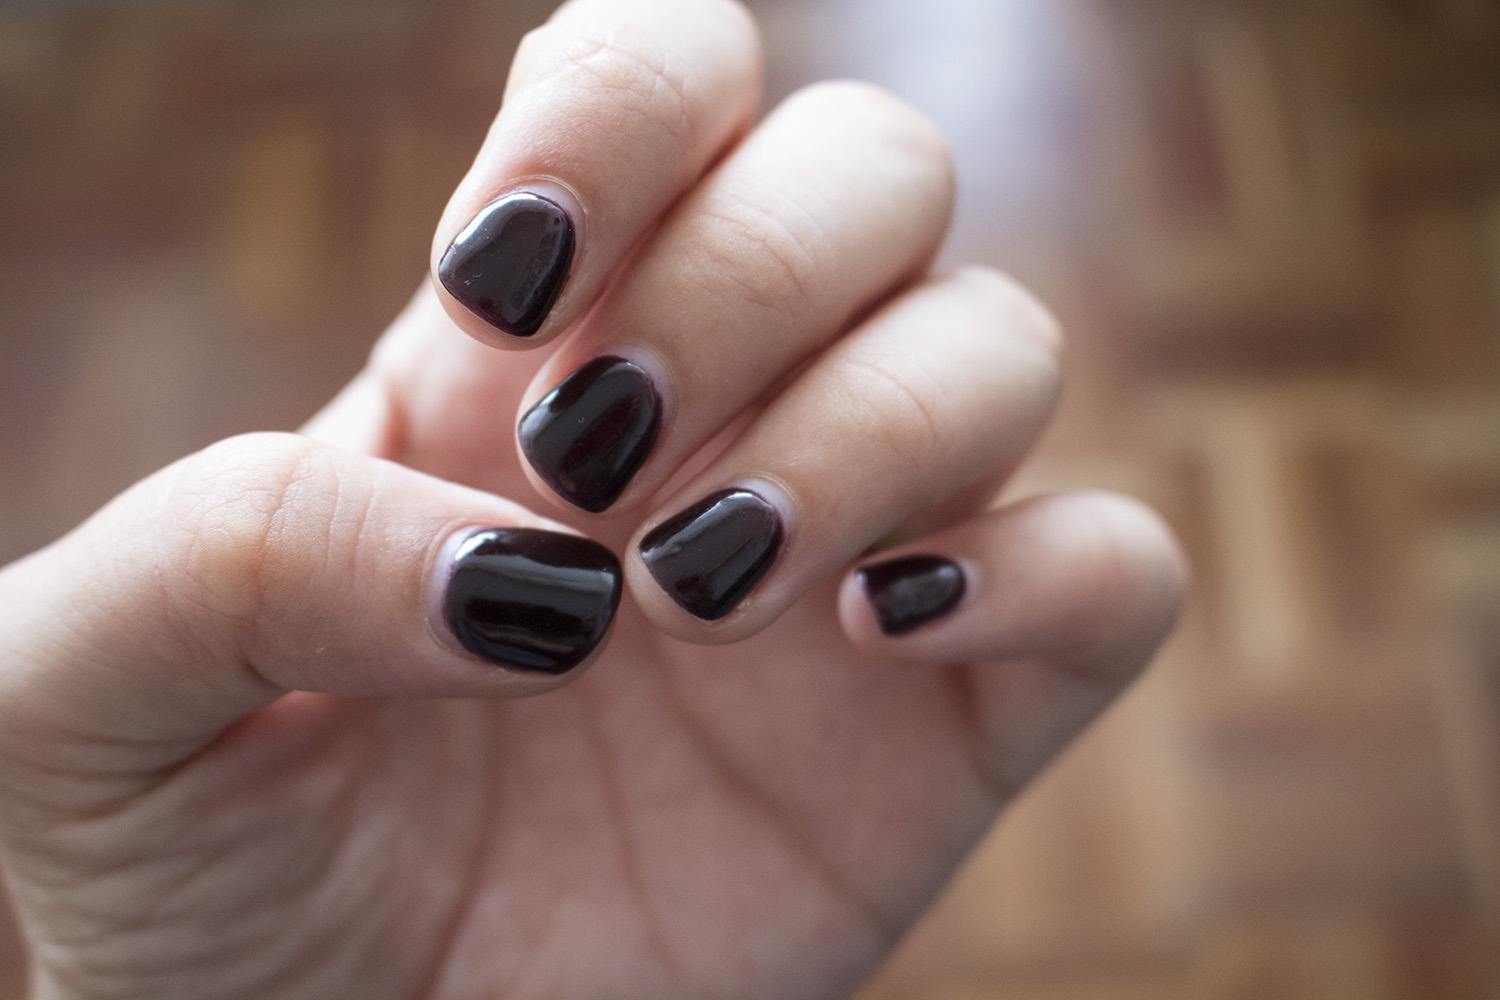 I tried the new Gelish Dip manicure system | 9Lives